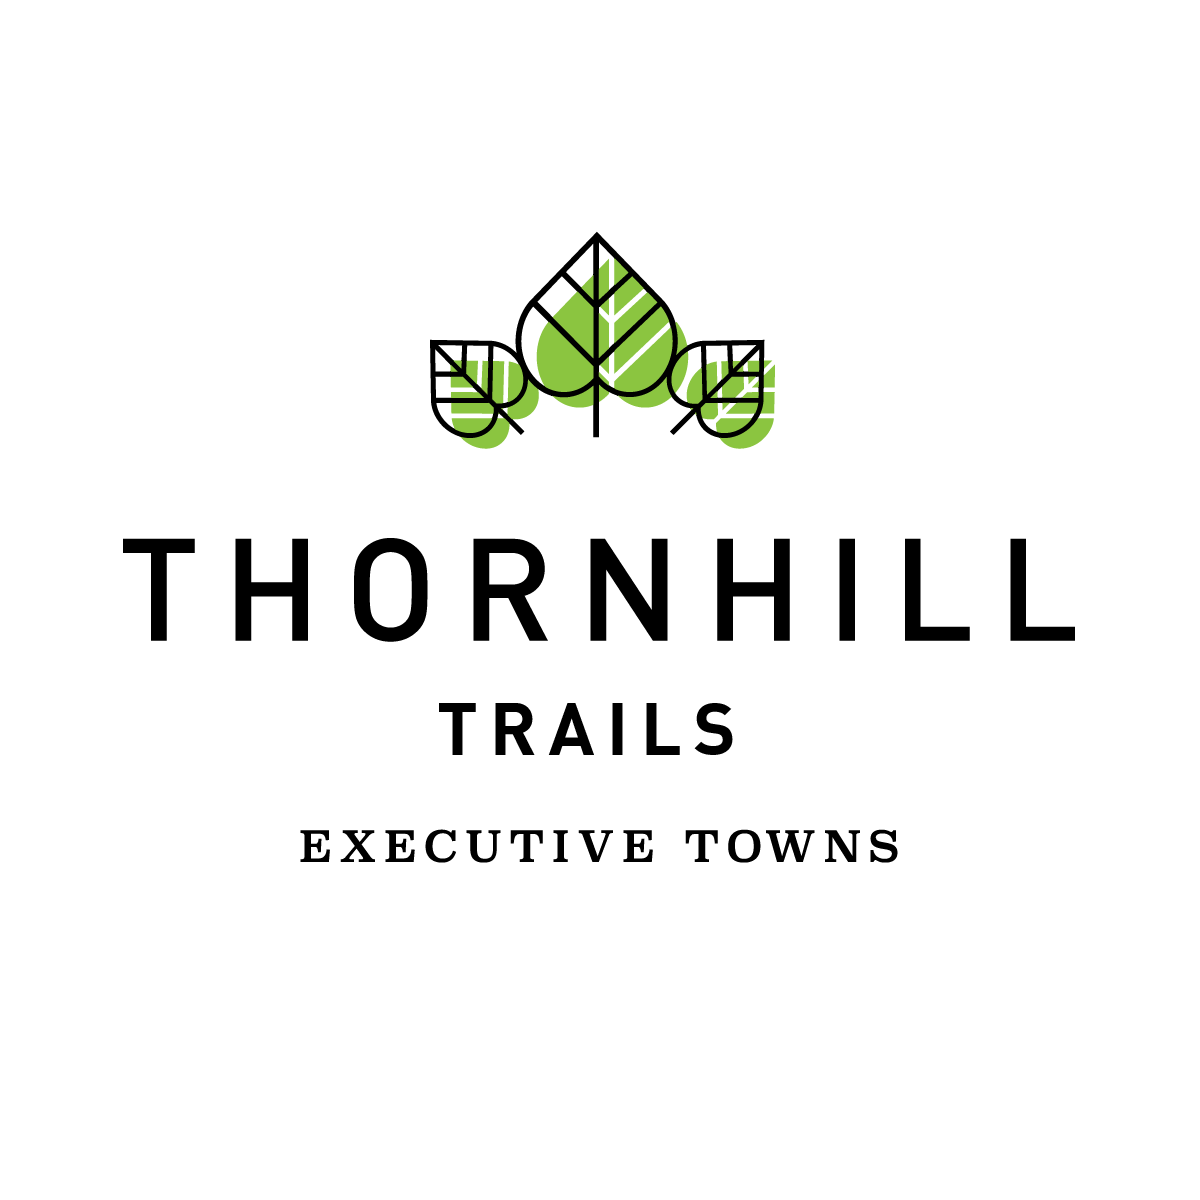 Thornhill Trails